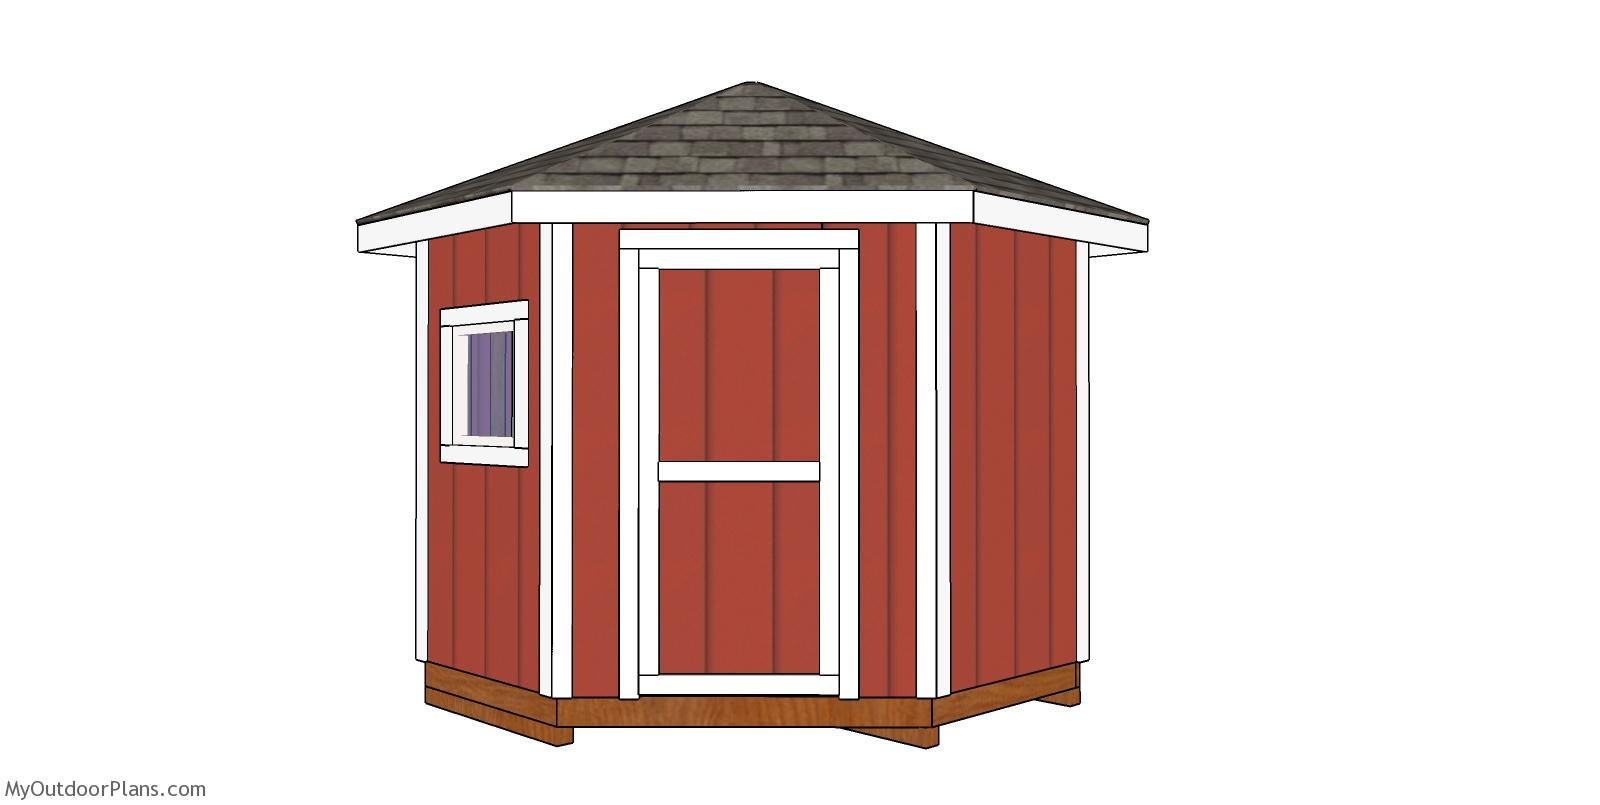 8x8 5 Sided Corner Shed - Free DIY Plans